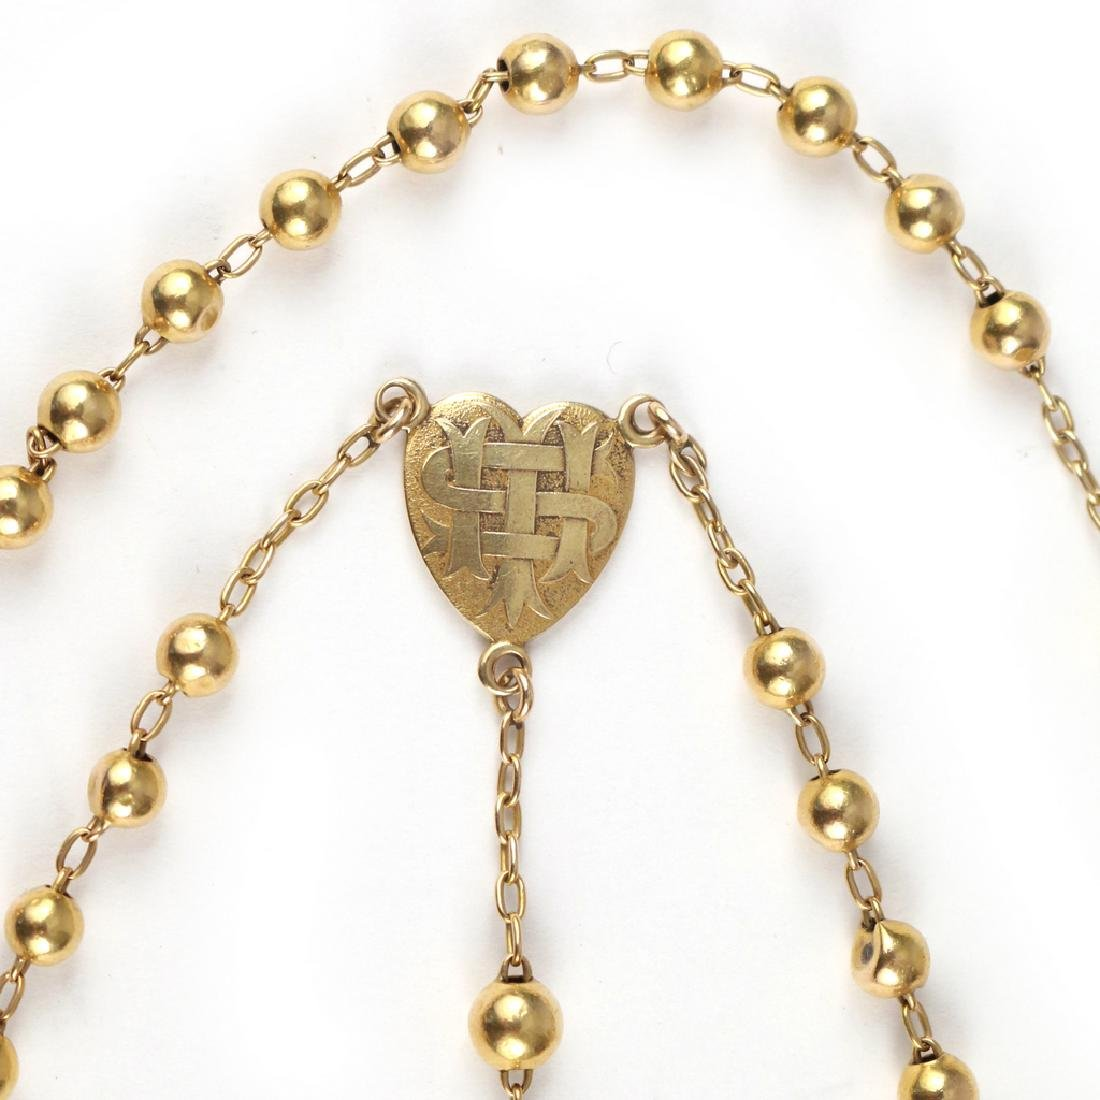 GOLD ROSARY BEADS - 2